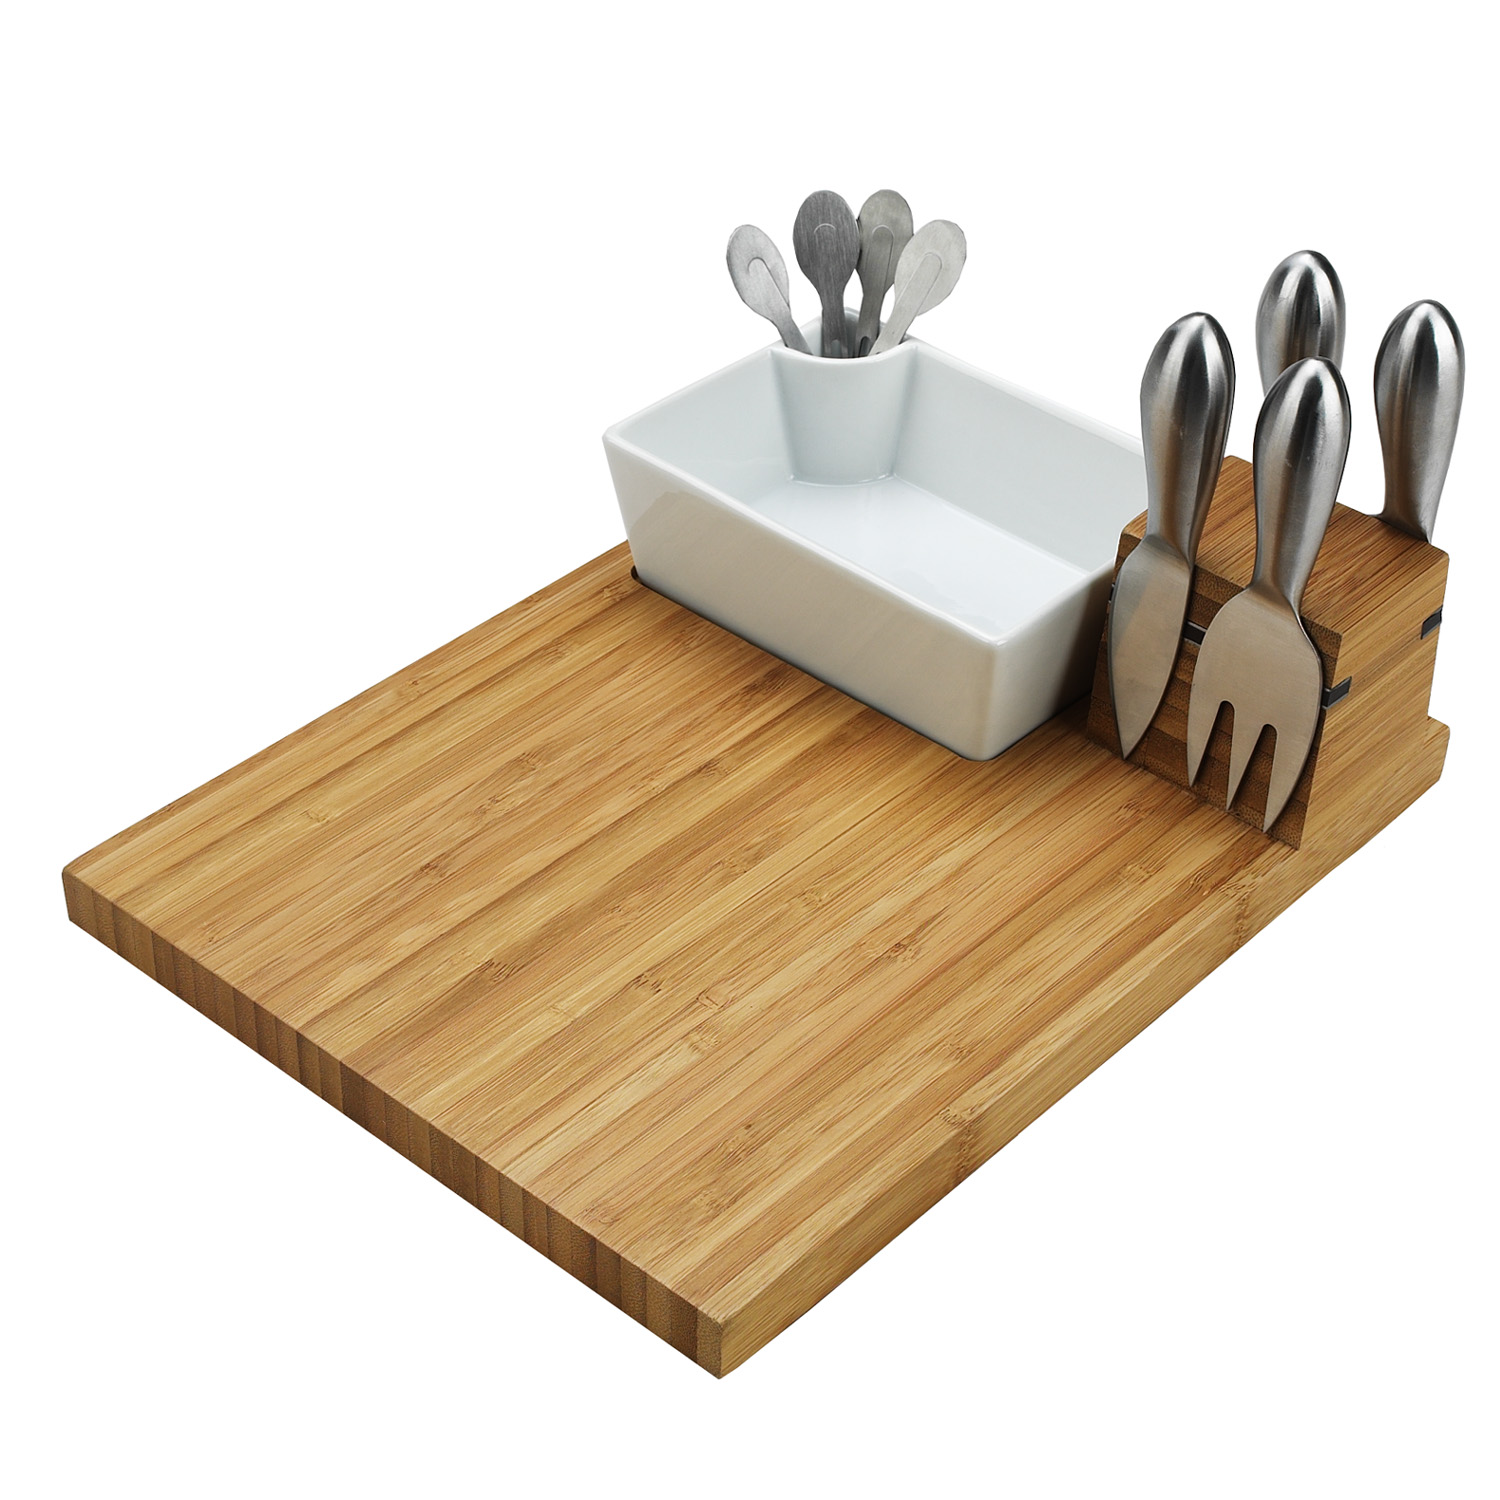 The Buxton cheese board set